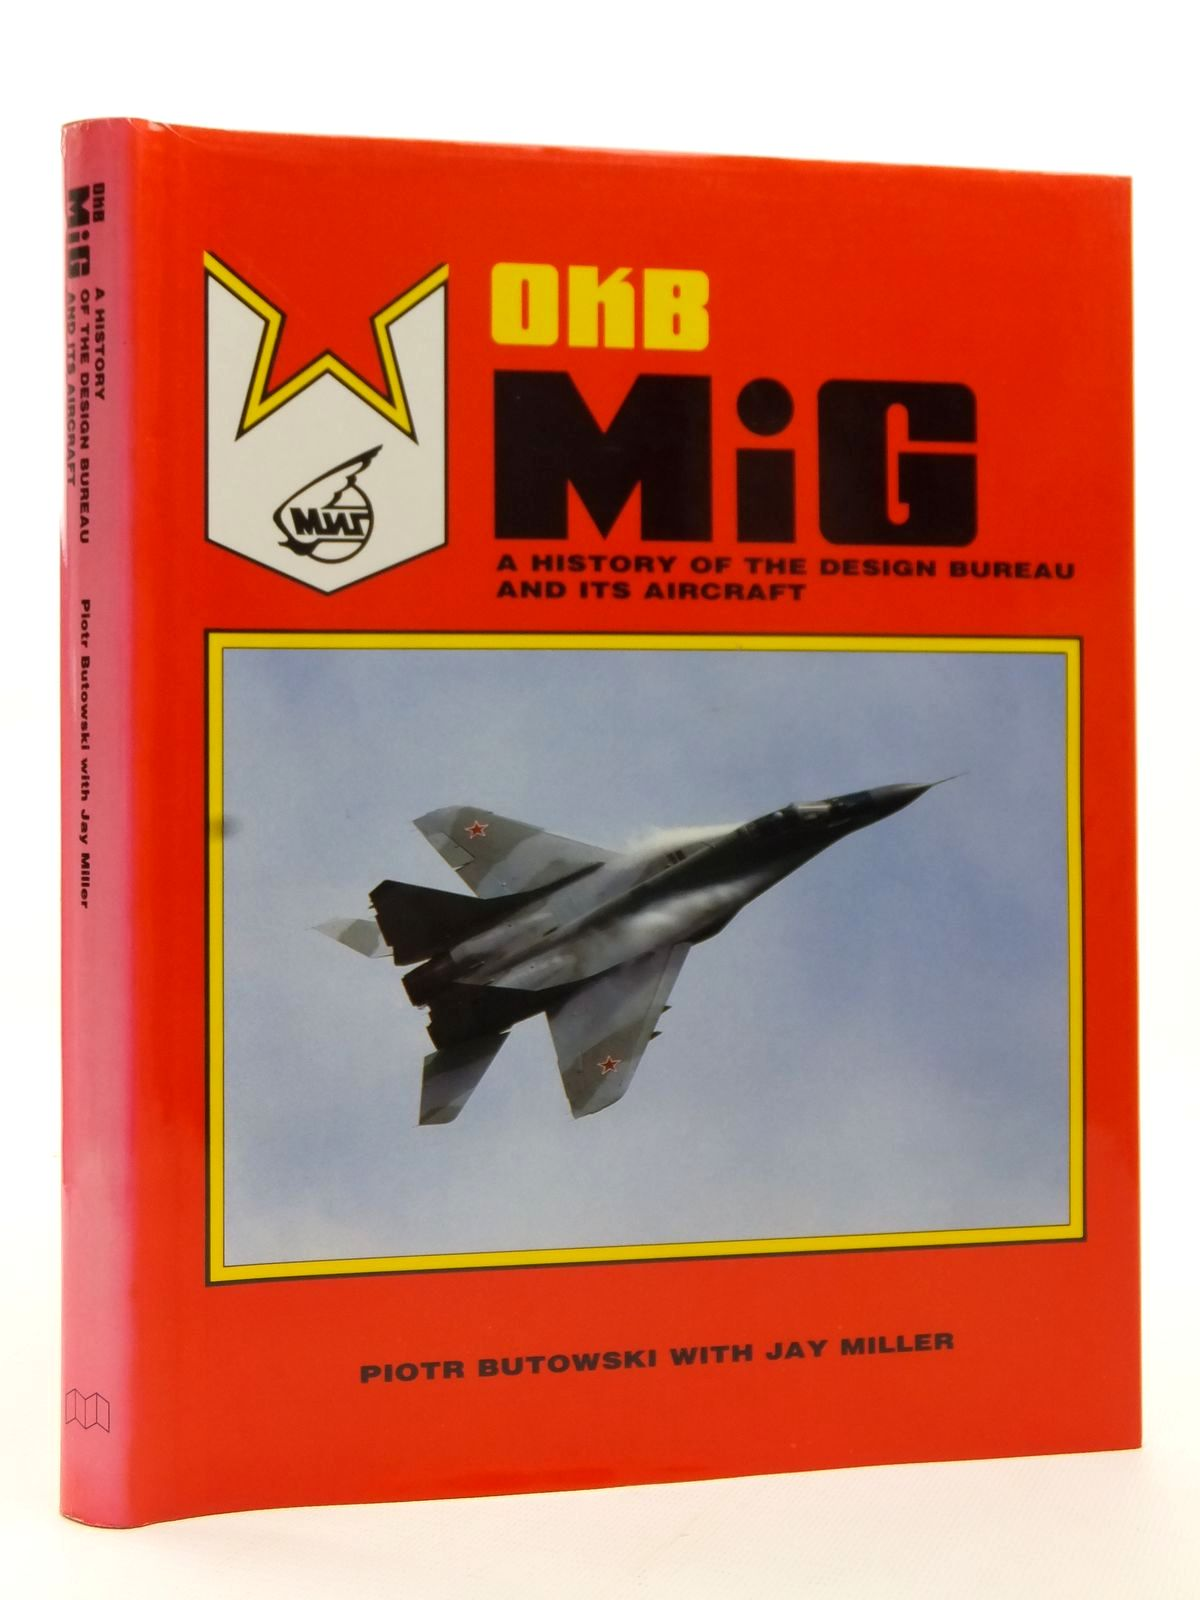 Photo of OKB MIG A HISTORY OF THE DESIGN BUREAU AND ITS AIRCRAFT written by Butowski, Piotr<br />Miller, Jay published by Aerofax, Midland Counties Publications (STOCK CODE: 2122916)  for sale by Stella & Rose's Books